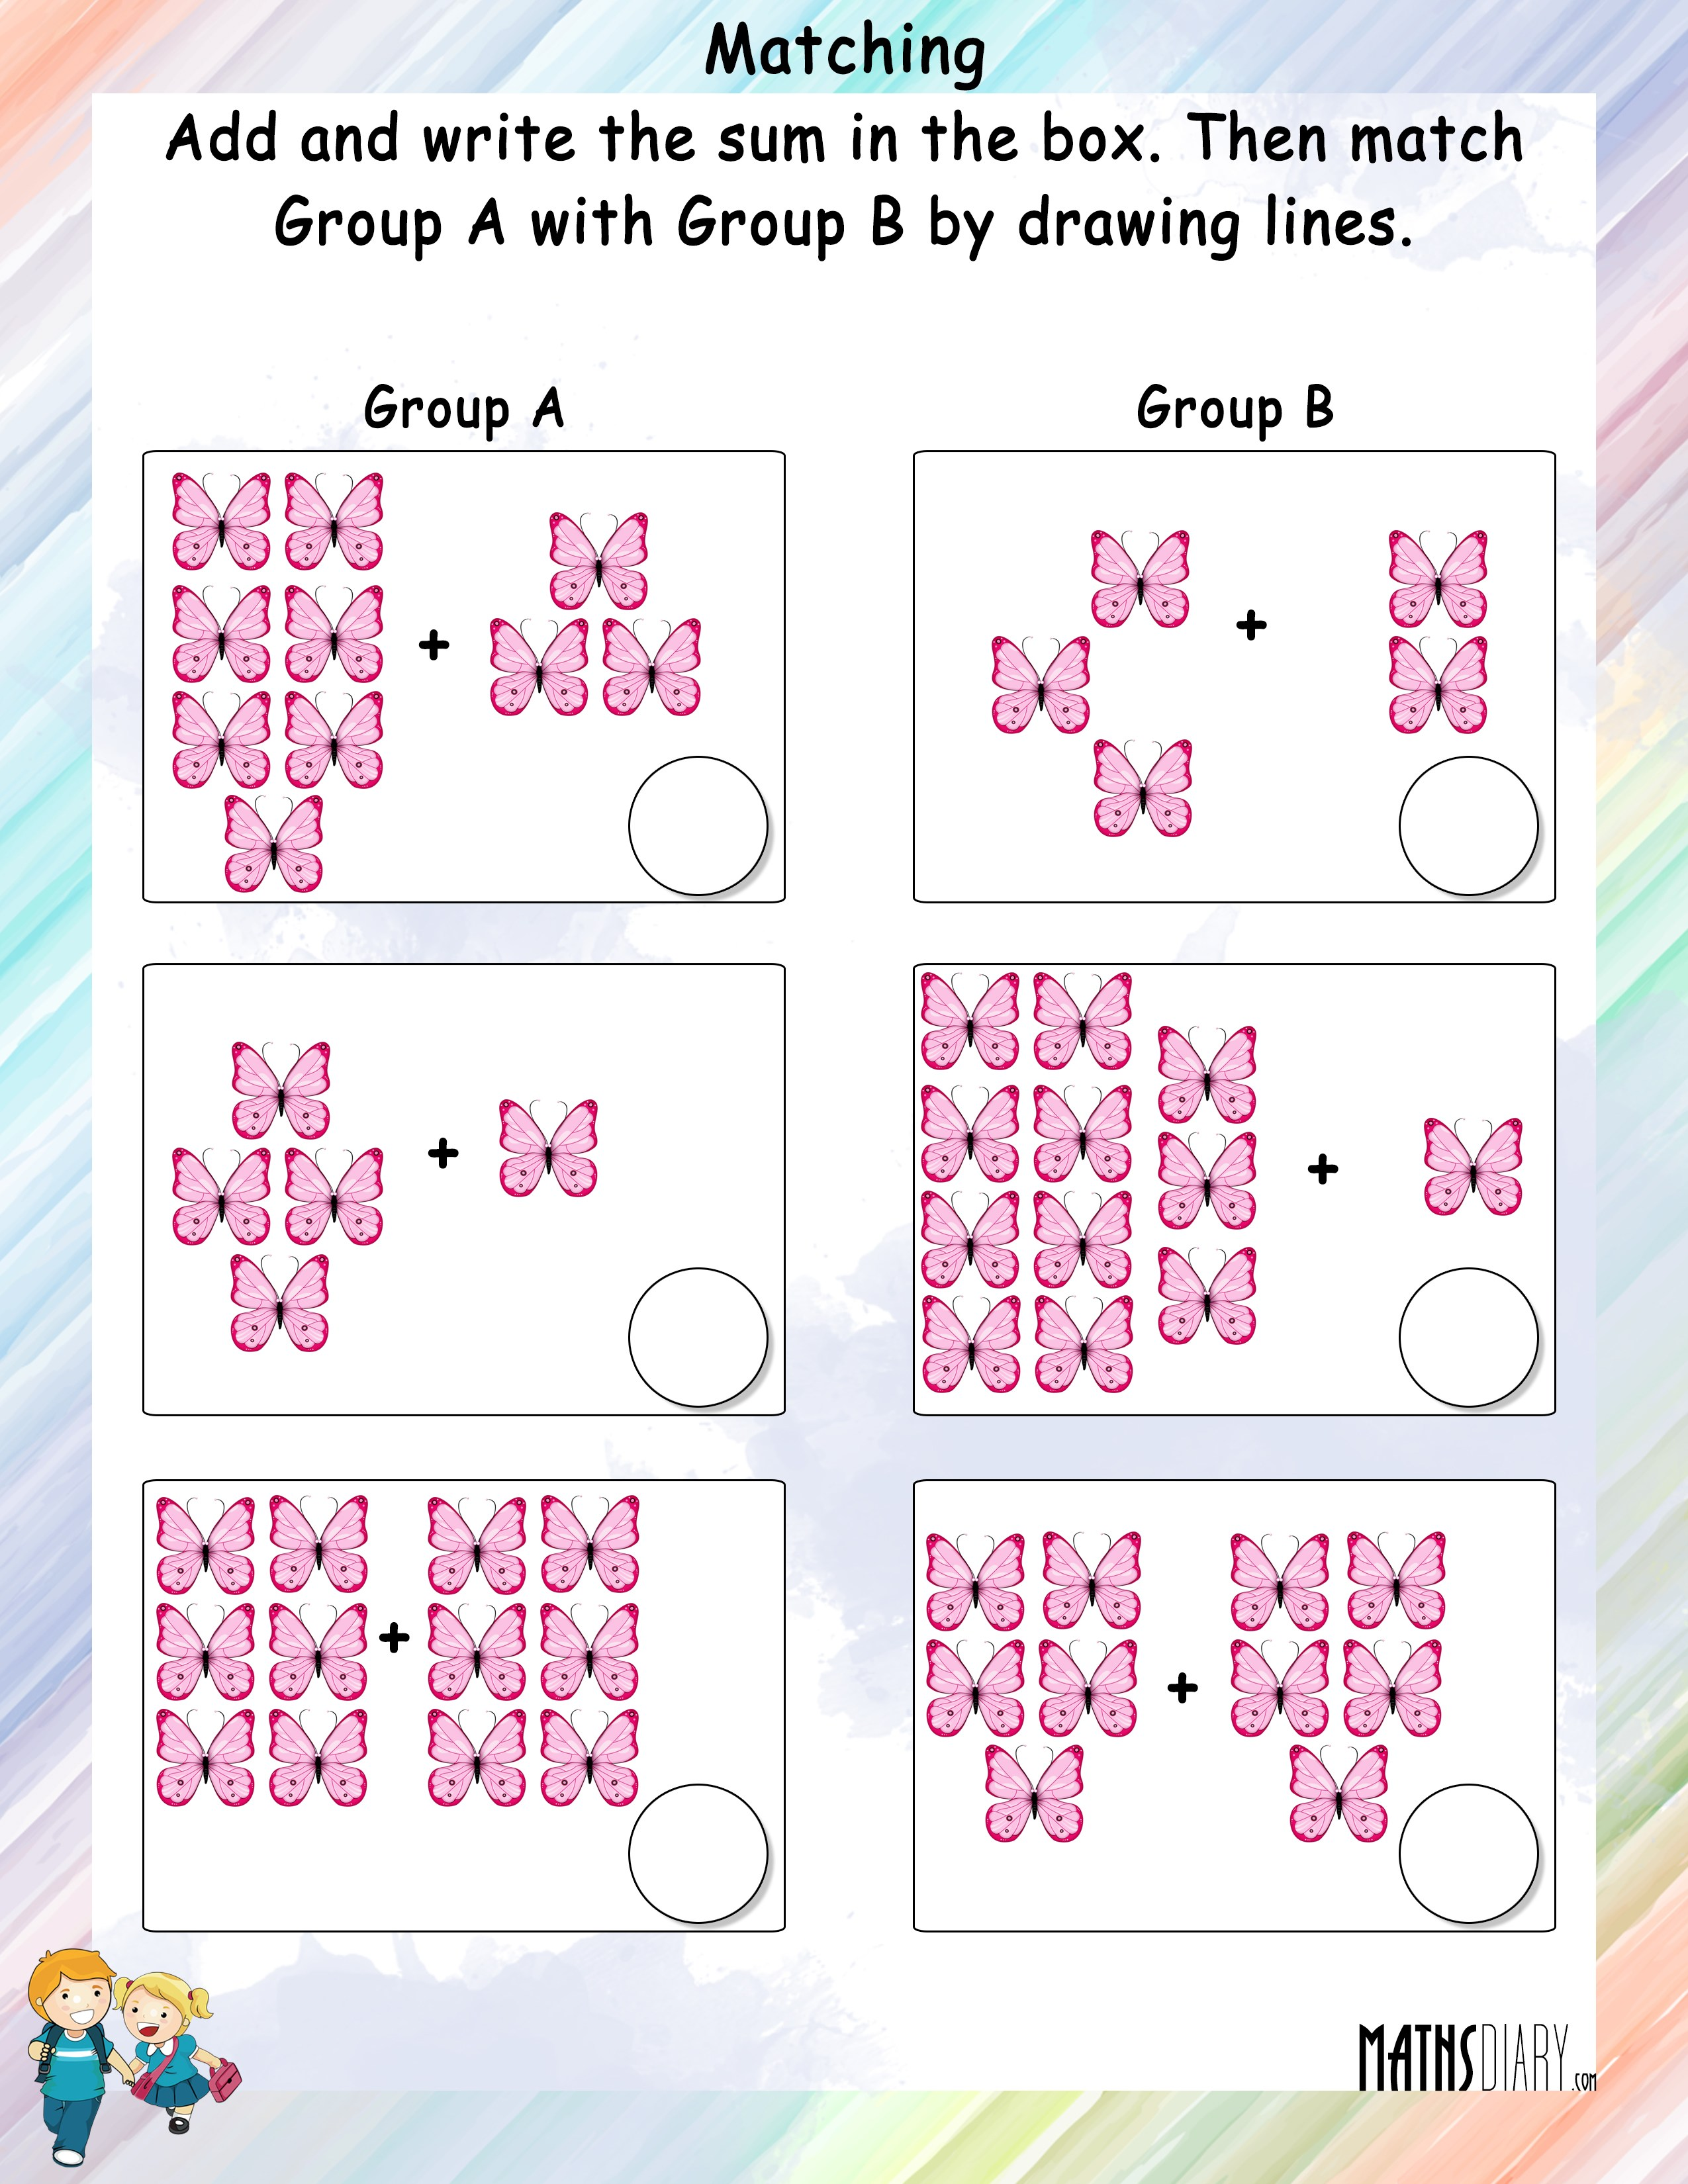 Adding And Matching The Sets